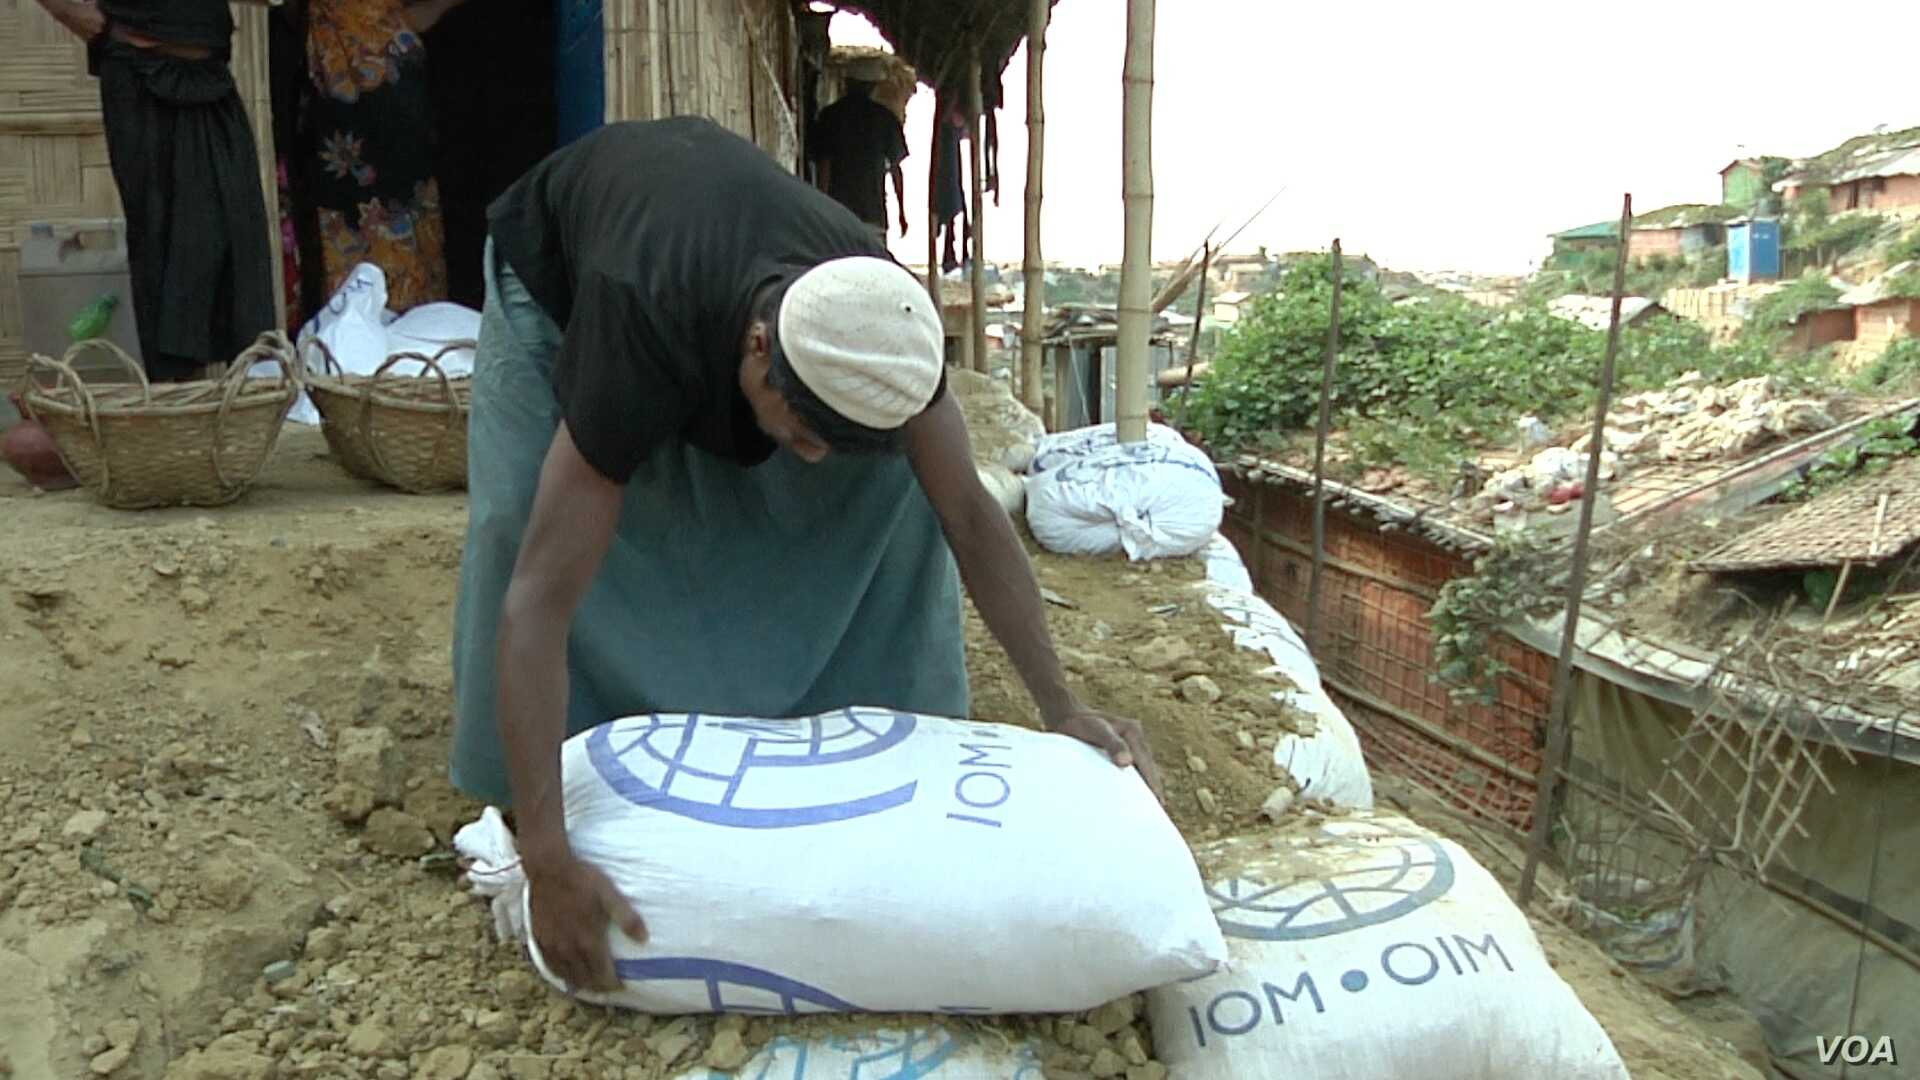 Refugees are using sandbags to shore up the hills in the refugees camps.